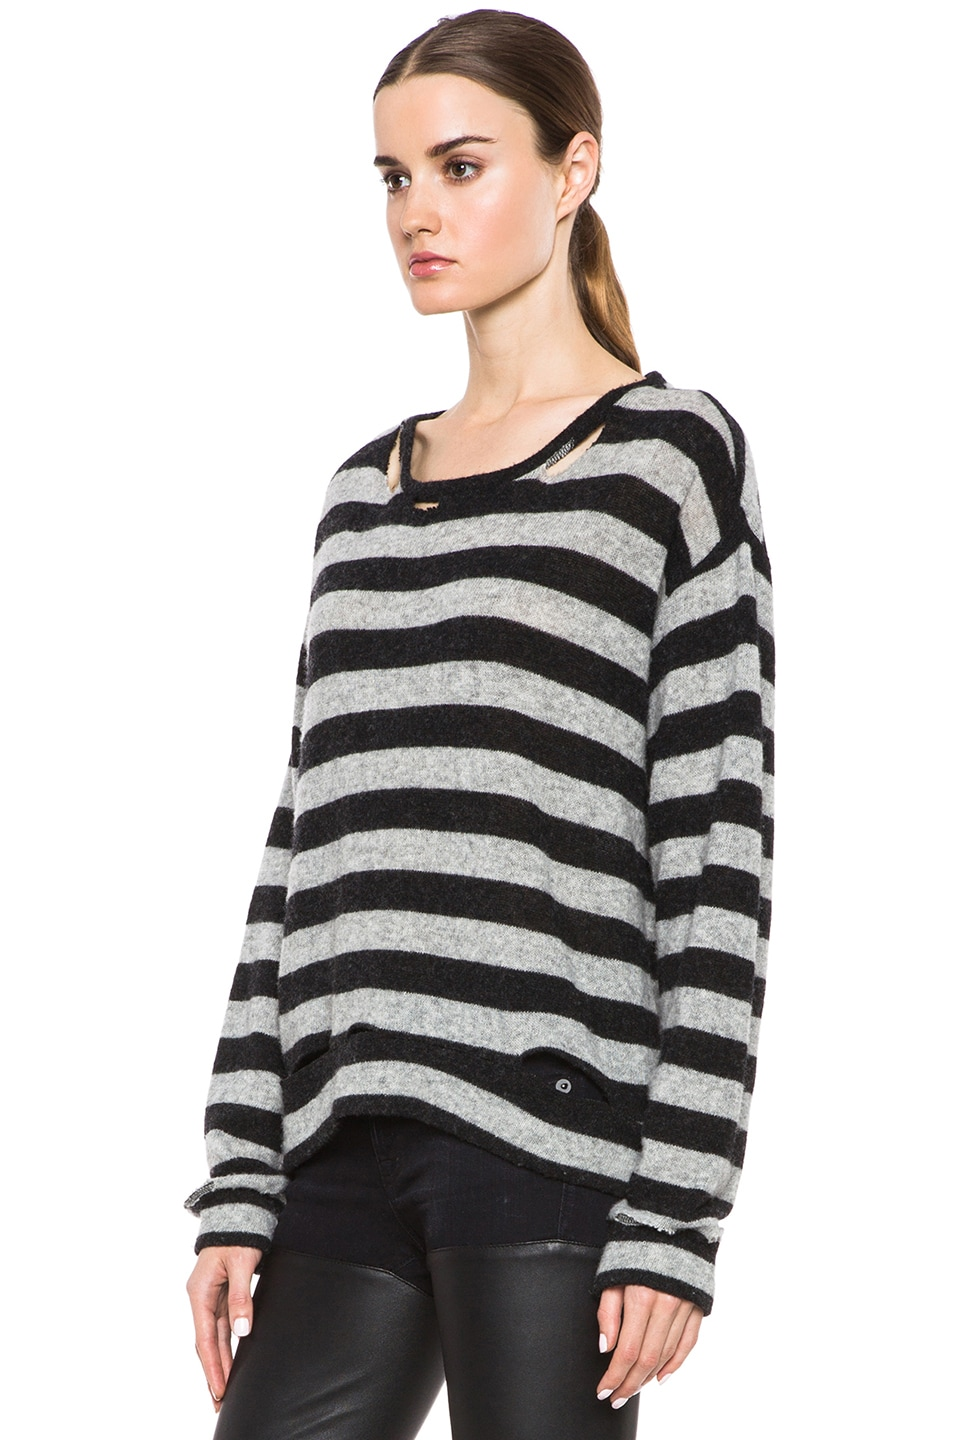 R13 Kate Striped Wool-Blend Sweater with Holes in Grey & Black | FWRD